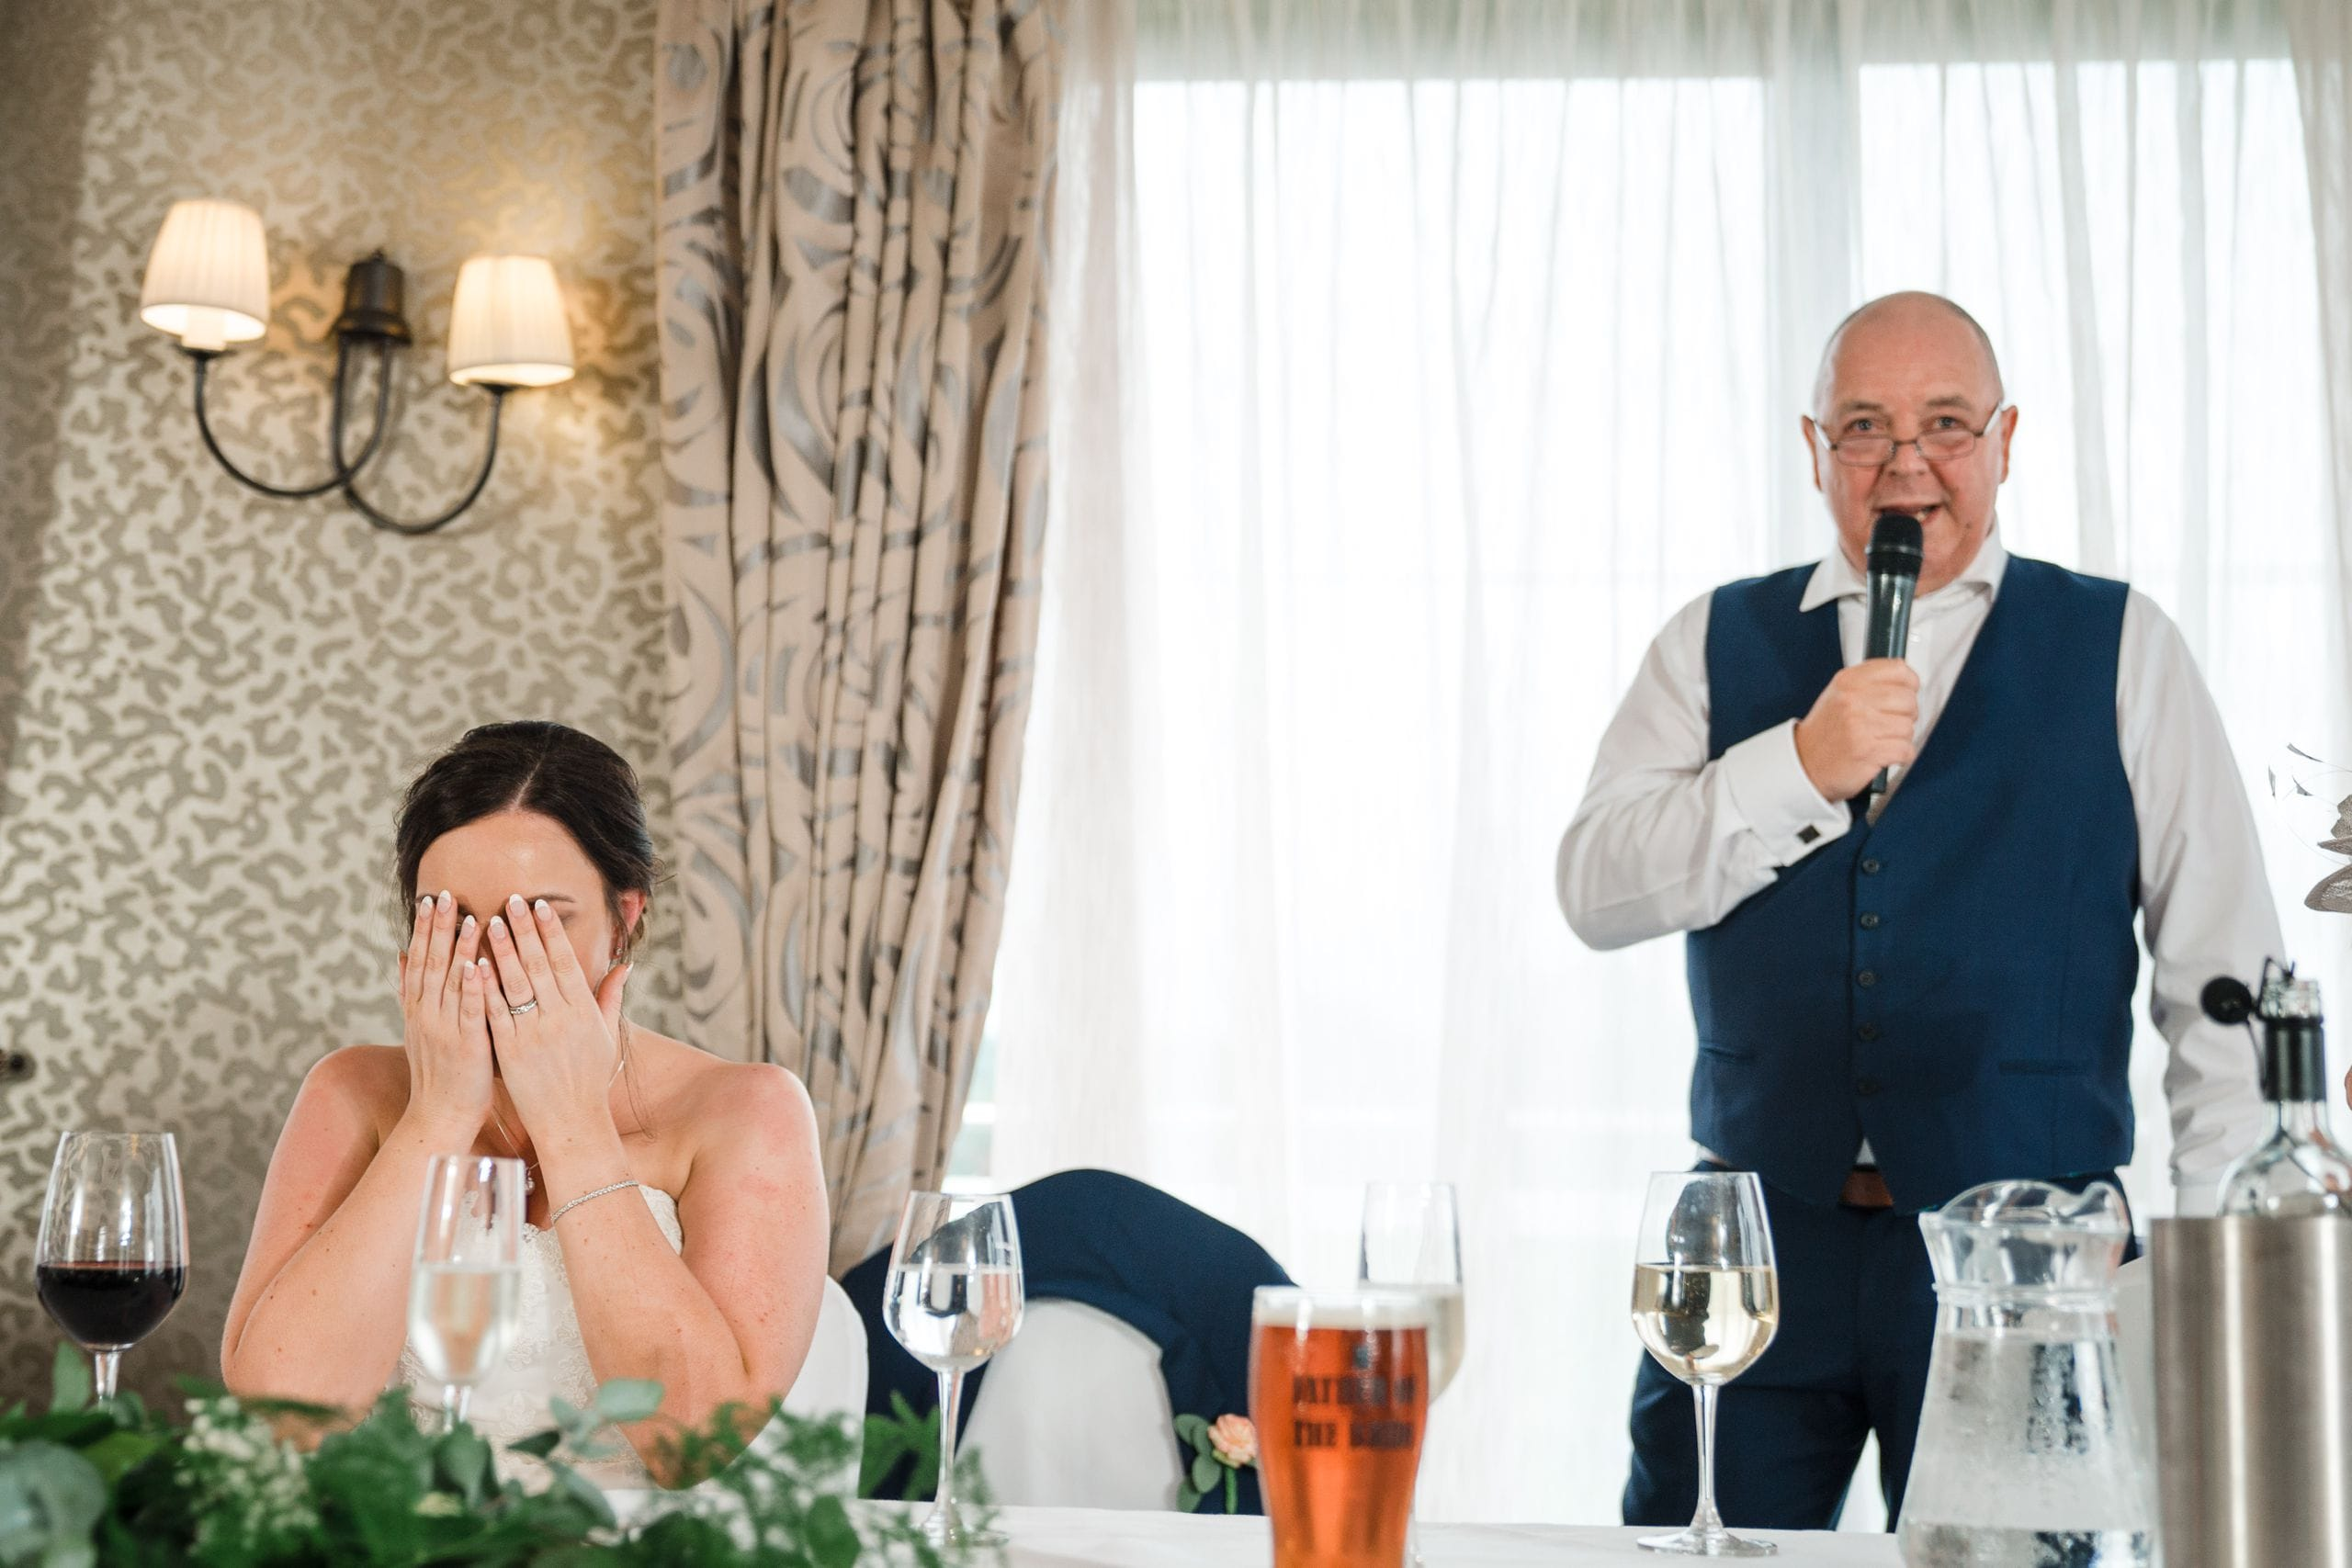 Bride covers face during Father of Bride speech